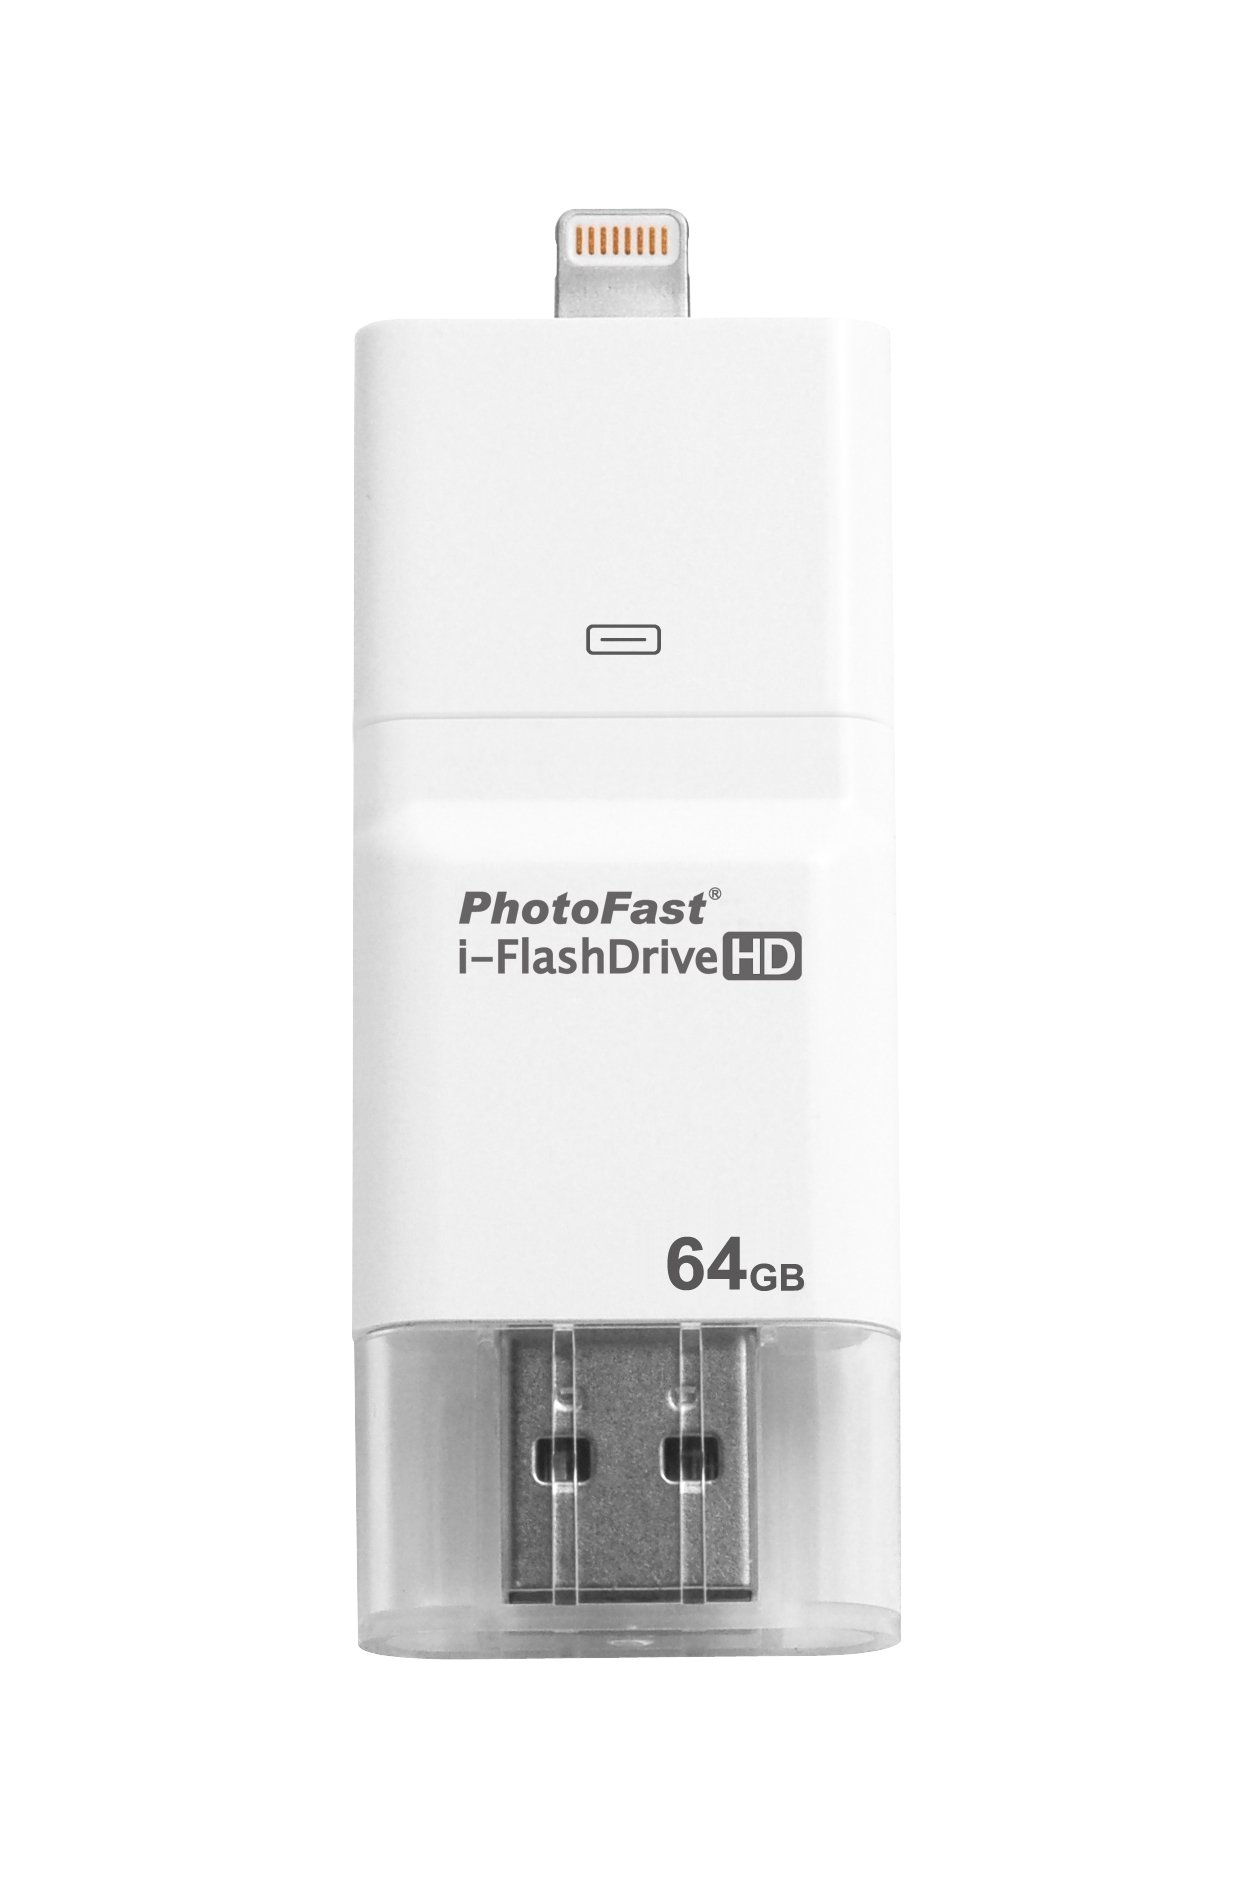 i-FlashDrive HD 64GB with dual storage between iOS and Mac/PC - Apple licensed for iPod/iPhone/iPad (Lightning/30-pin)